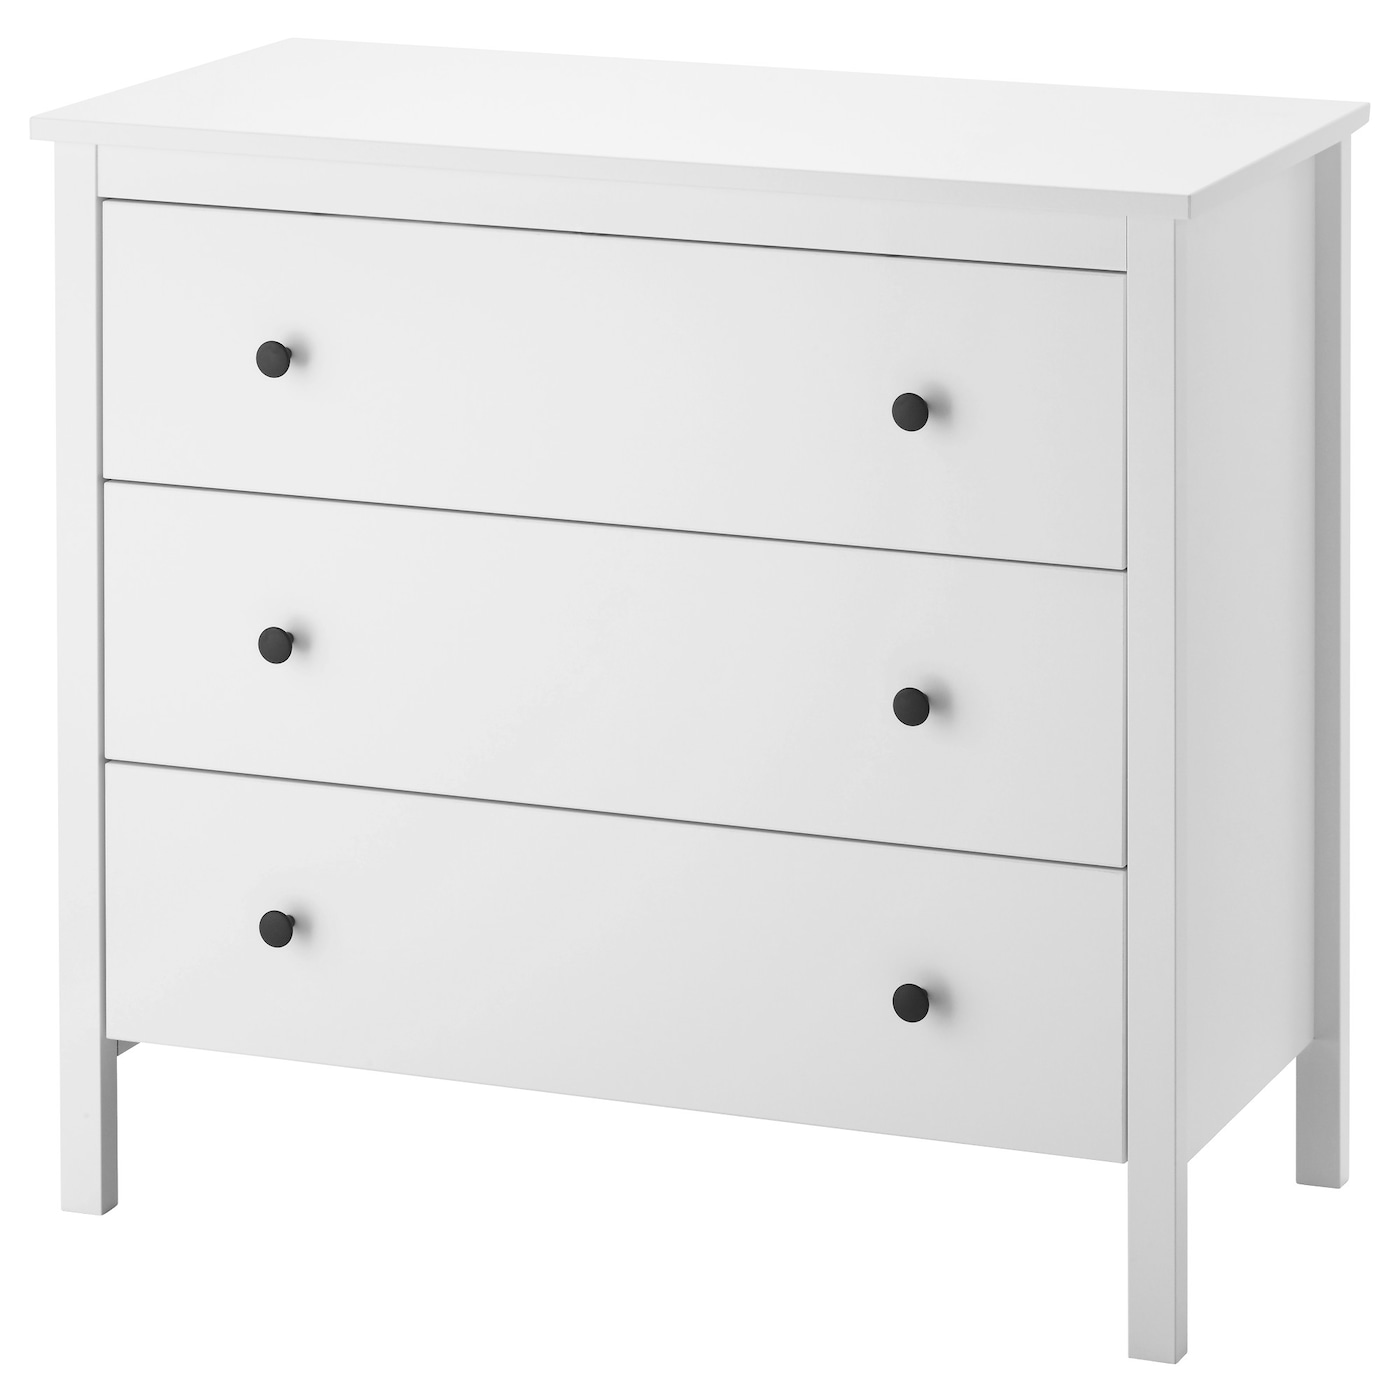 Koppang commode 3 tiroirs blanc 90x83 cm ikea for Ikea blanc commode